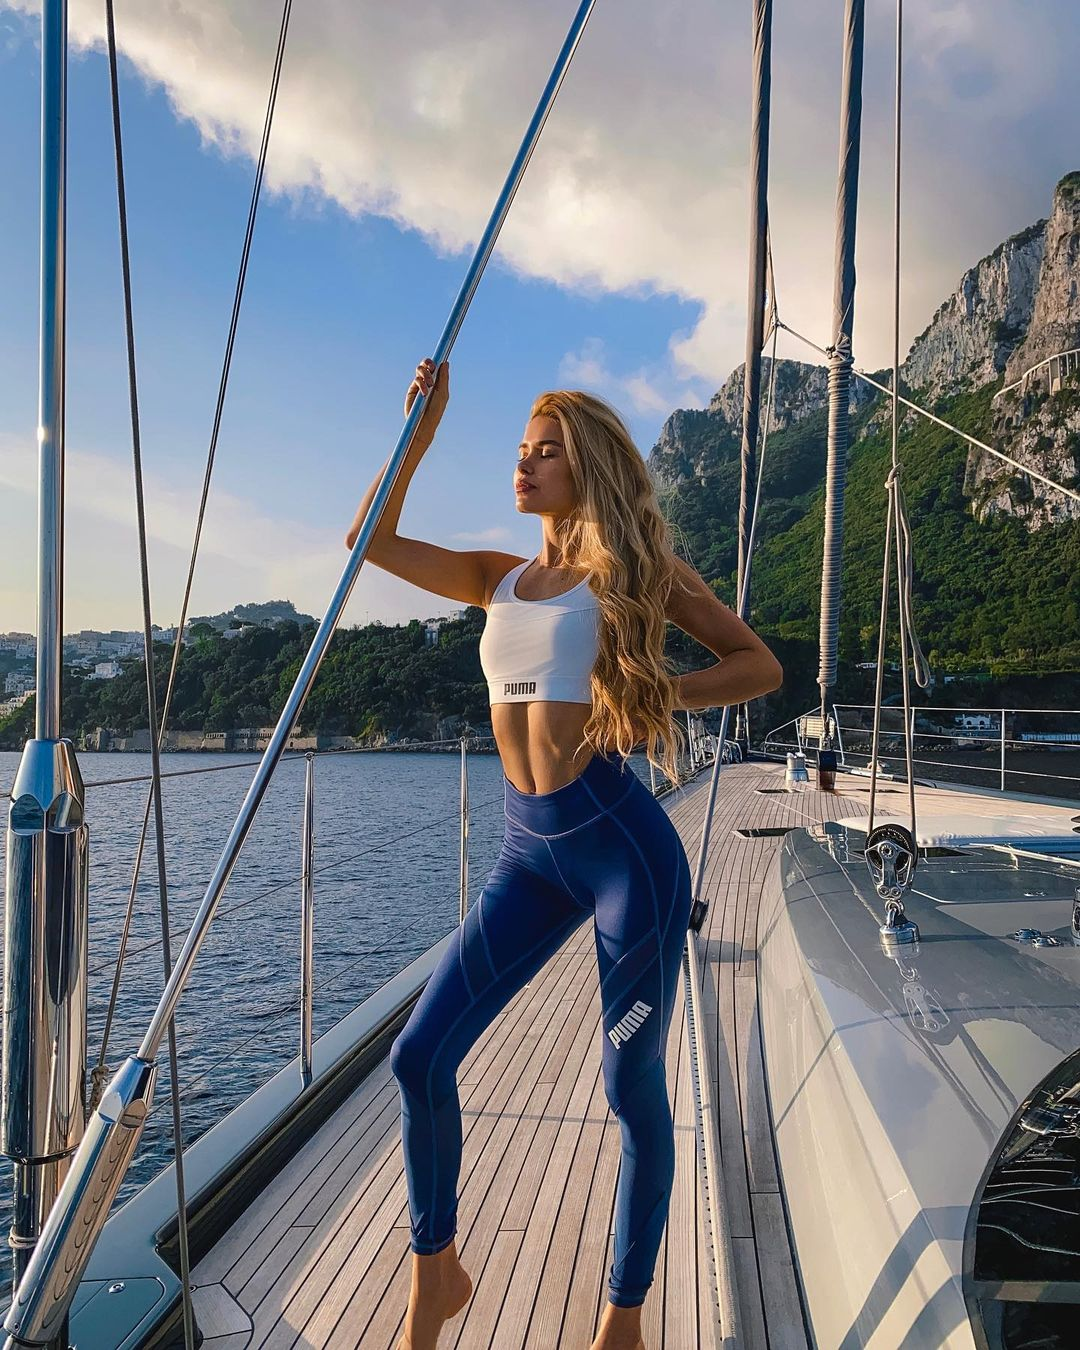 Who is Pamela Reif Pamela Reif Fascinated With Her Physique 6